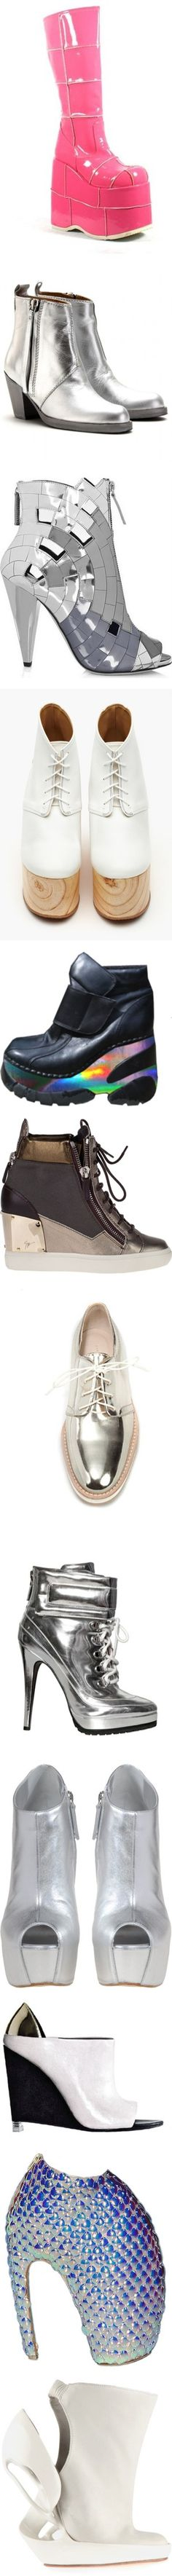 """Futuristic shoes and accessories"" by ladysnape ❤ liked on Polyvore"